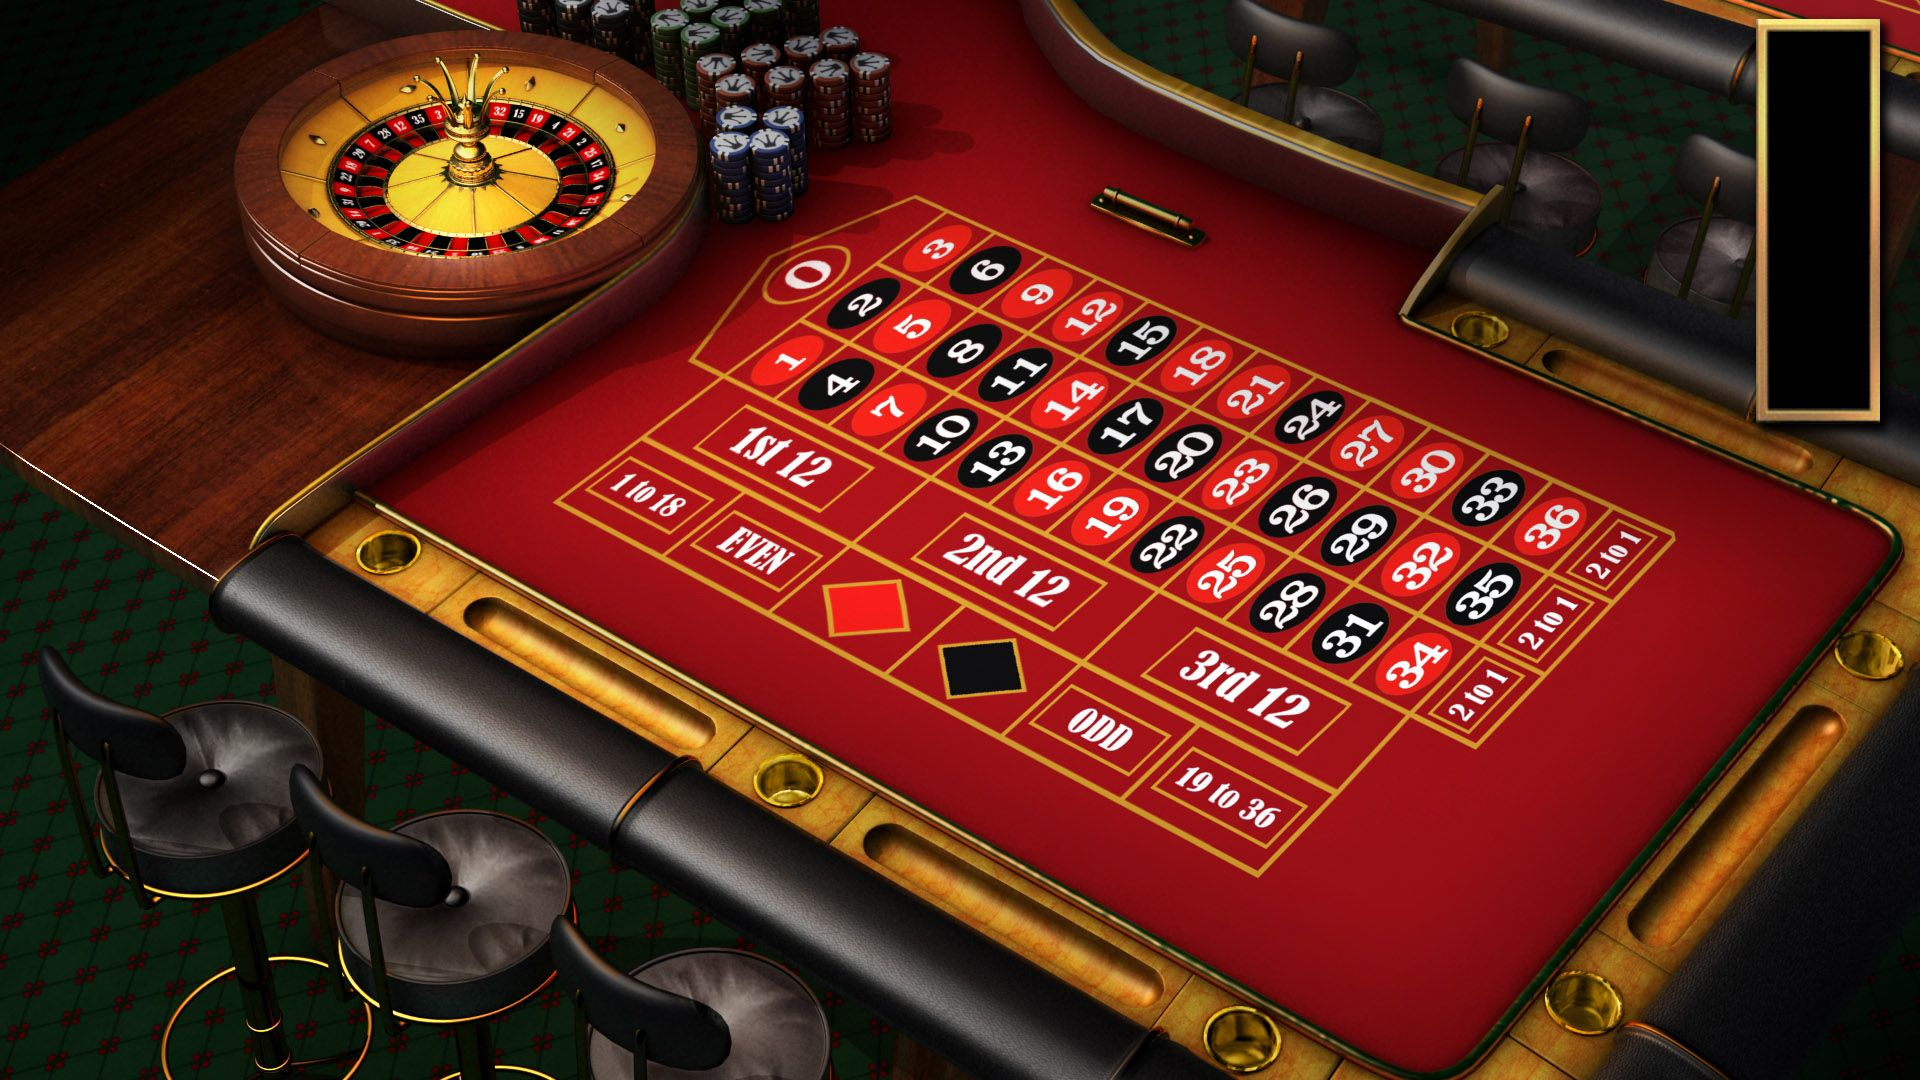 Athletics Wagering Online – Some tips about how to Bet Properly Online